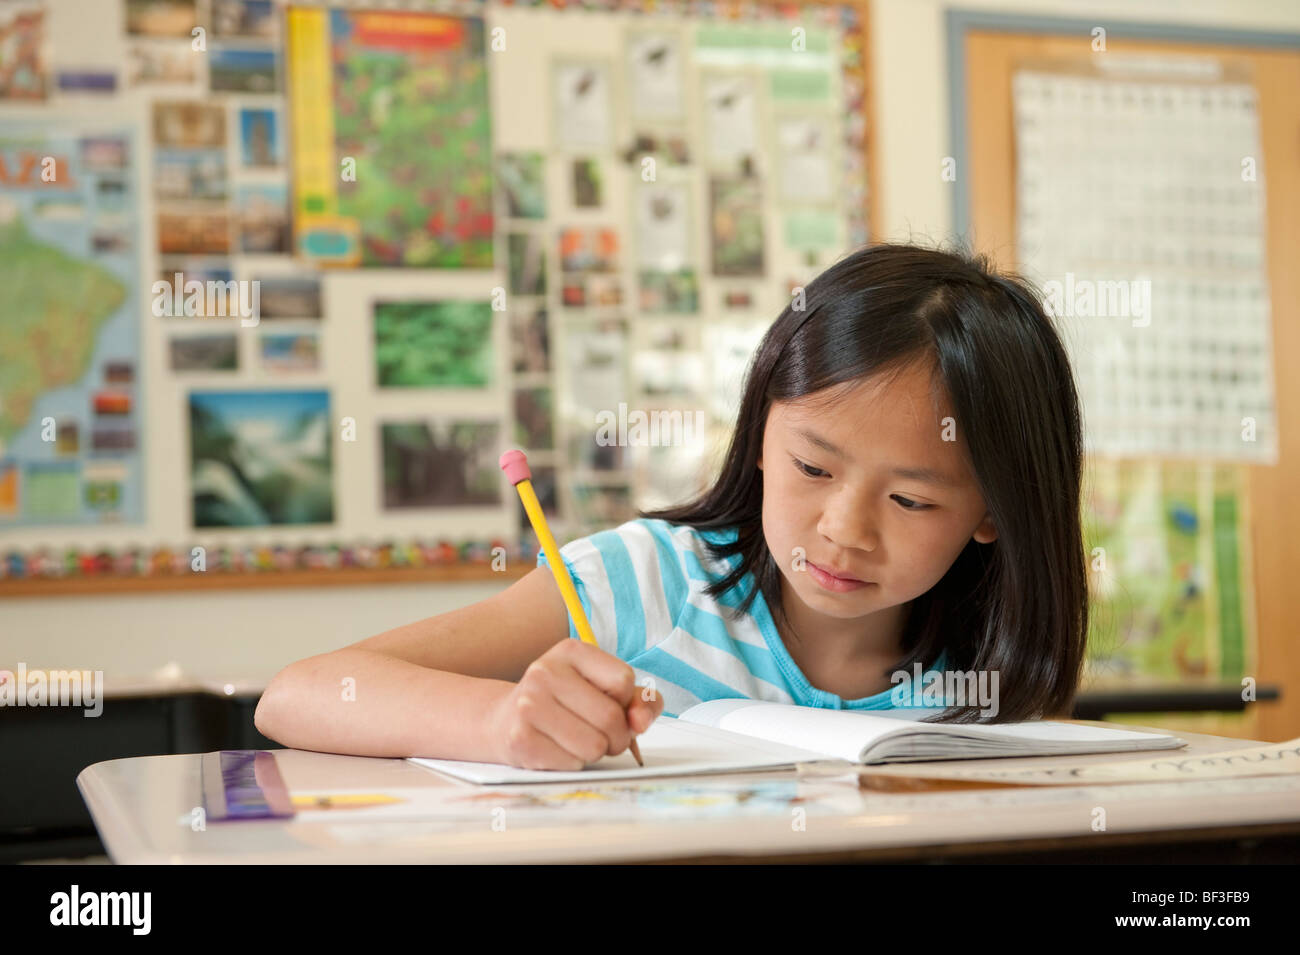 Elementary school student working - Stock Image